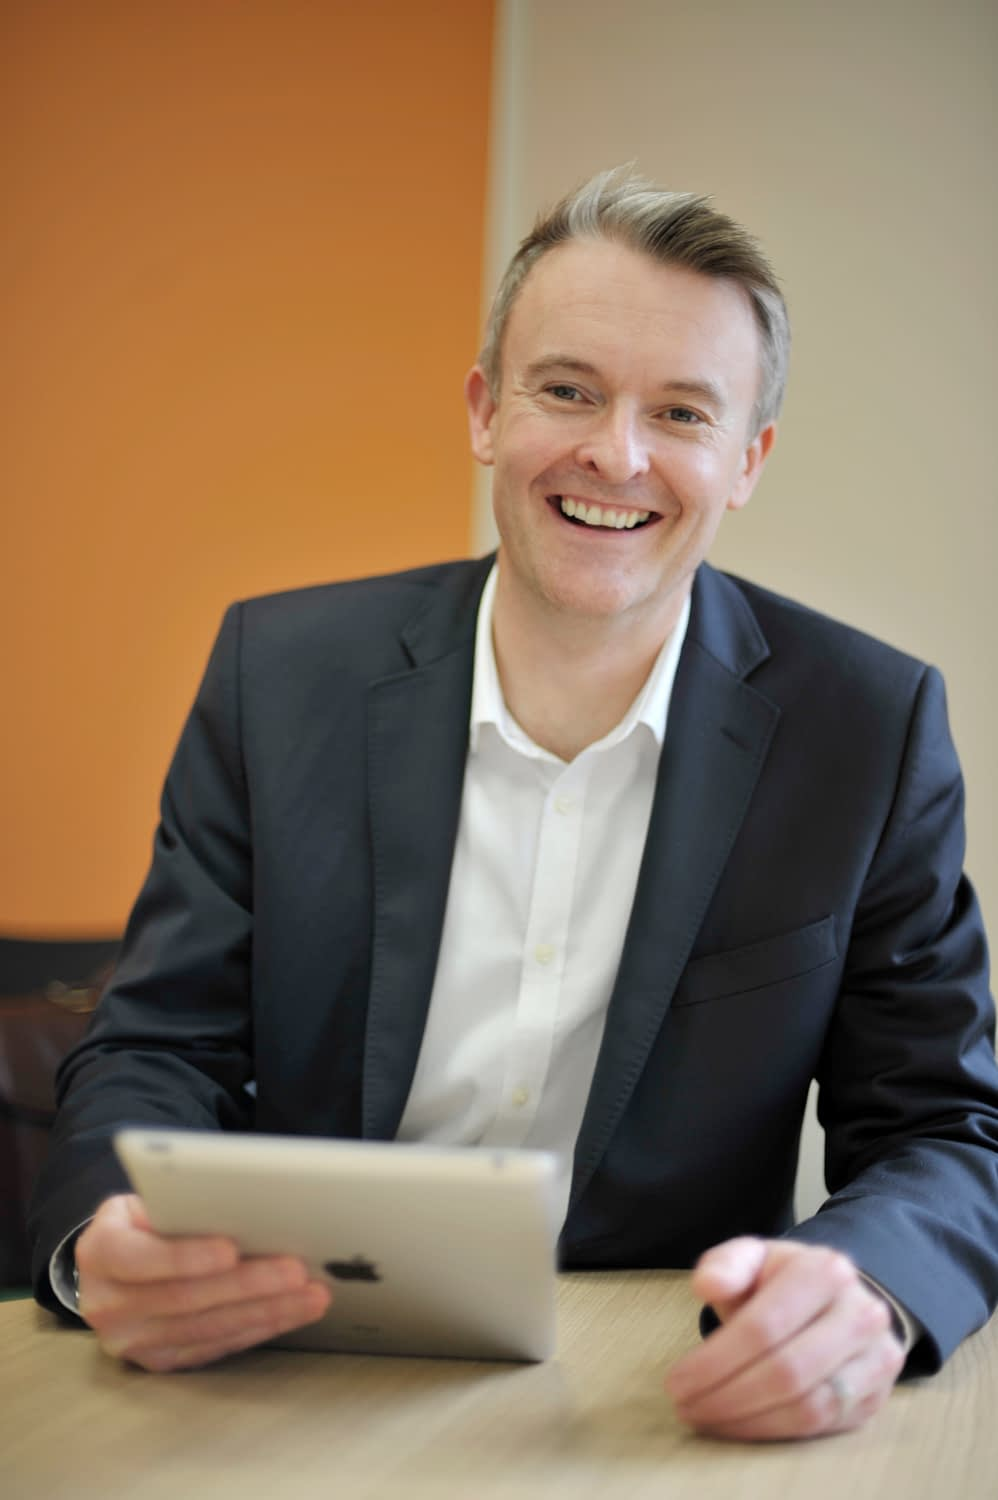 Exco InTouch CEO and founder Tim Davis